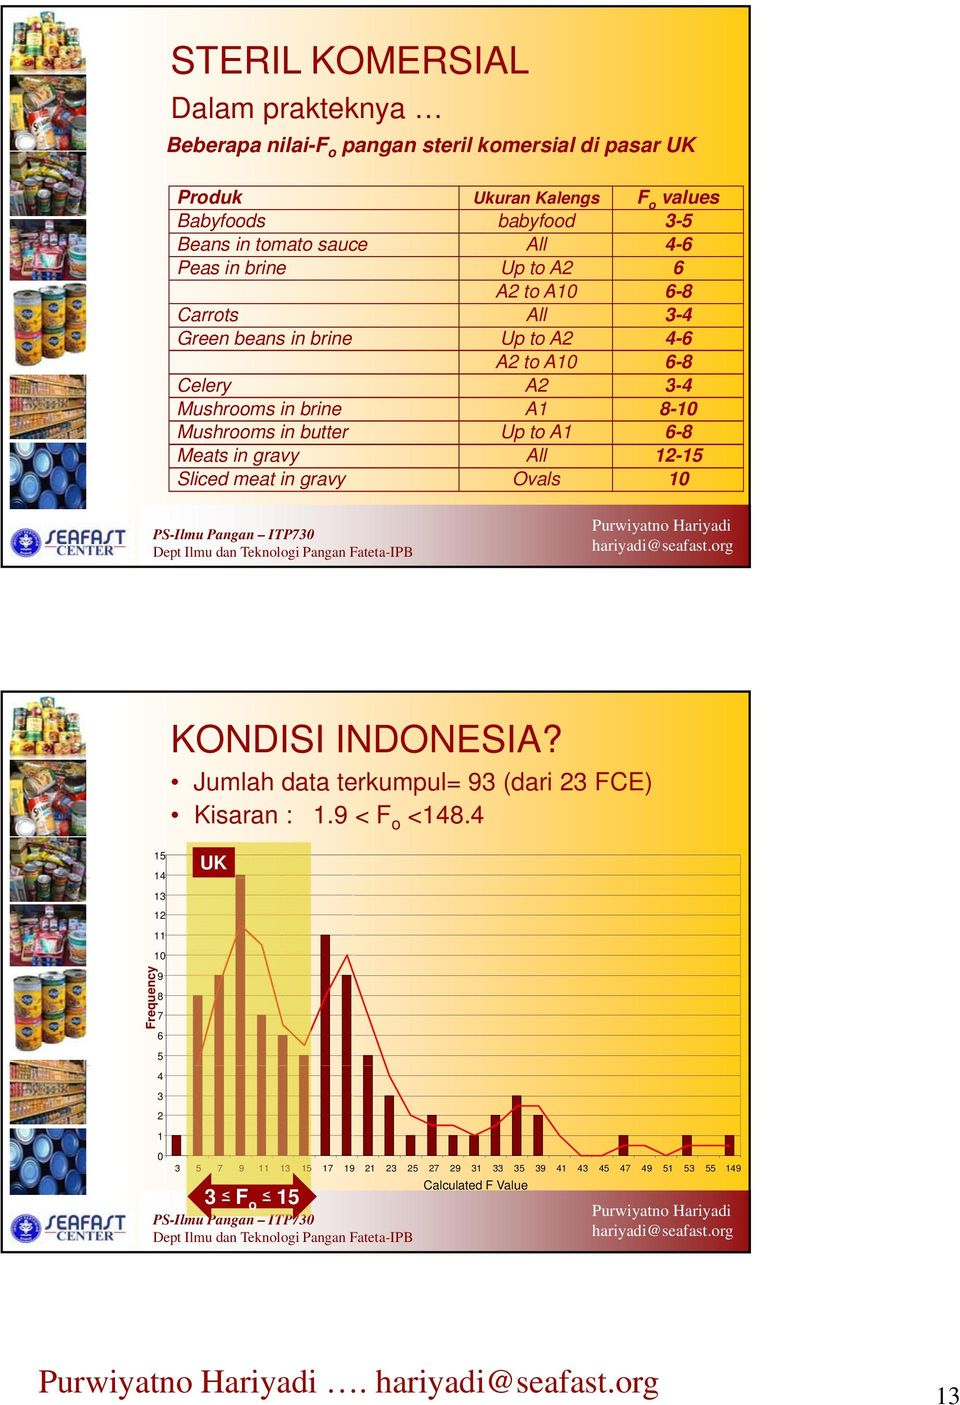 Up to A1 All Ovals F o values 3-5 4-6 6 6-8 3-4 4-6 6-8 3-4 8-10 6-8 12-15 10 Frequency KONDISI INDONESIA? Jumlah data terkumpul= 93 (dari 23 FCE) Kisaran : 1.